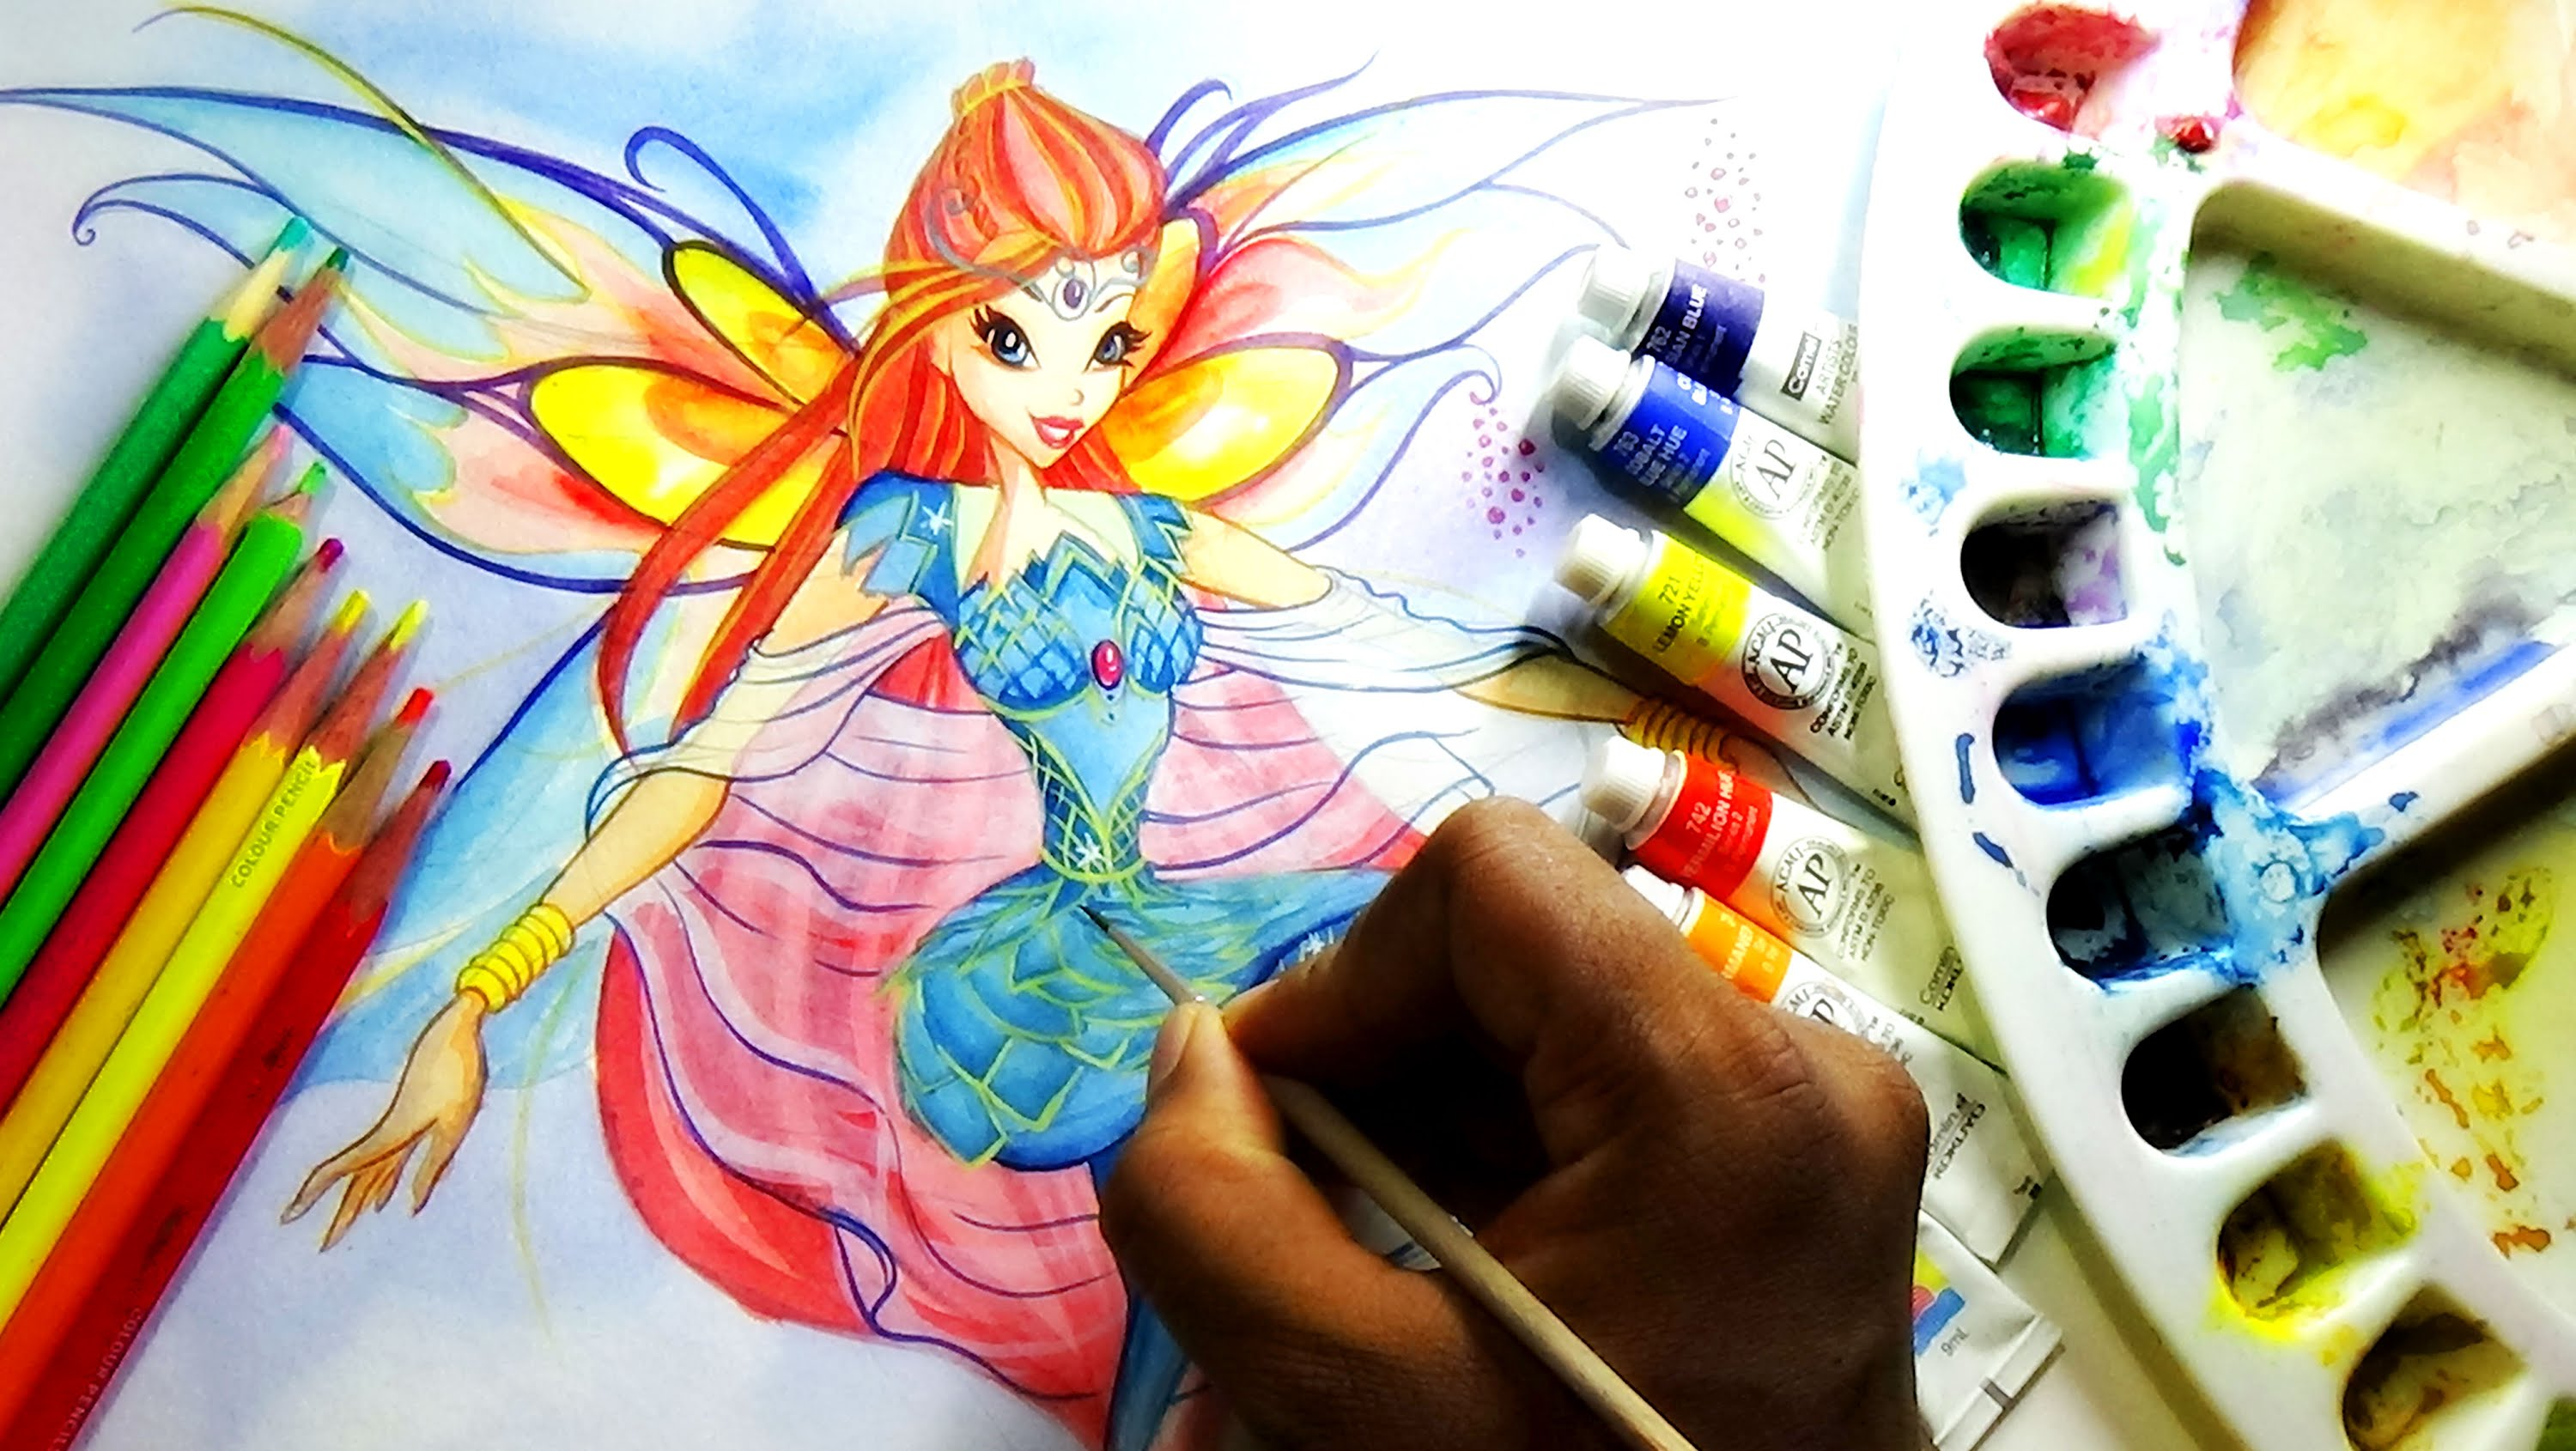 Winx Club Bloom Drawing at GetDrawings com | Free for